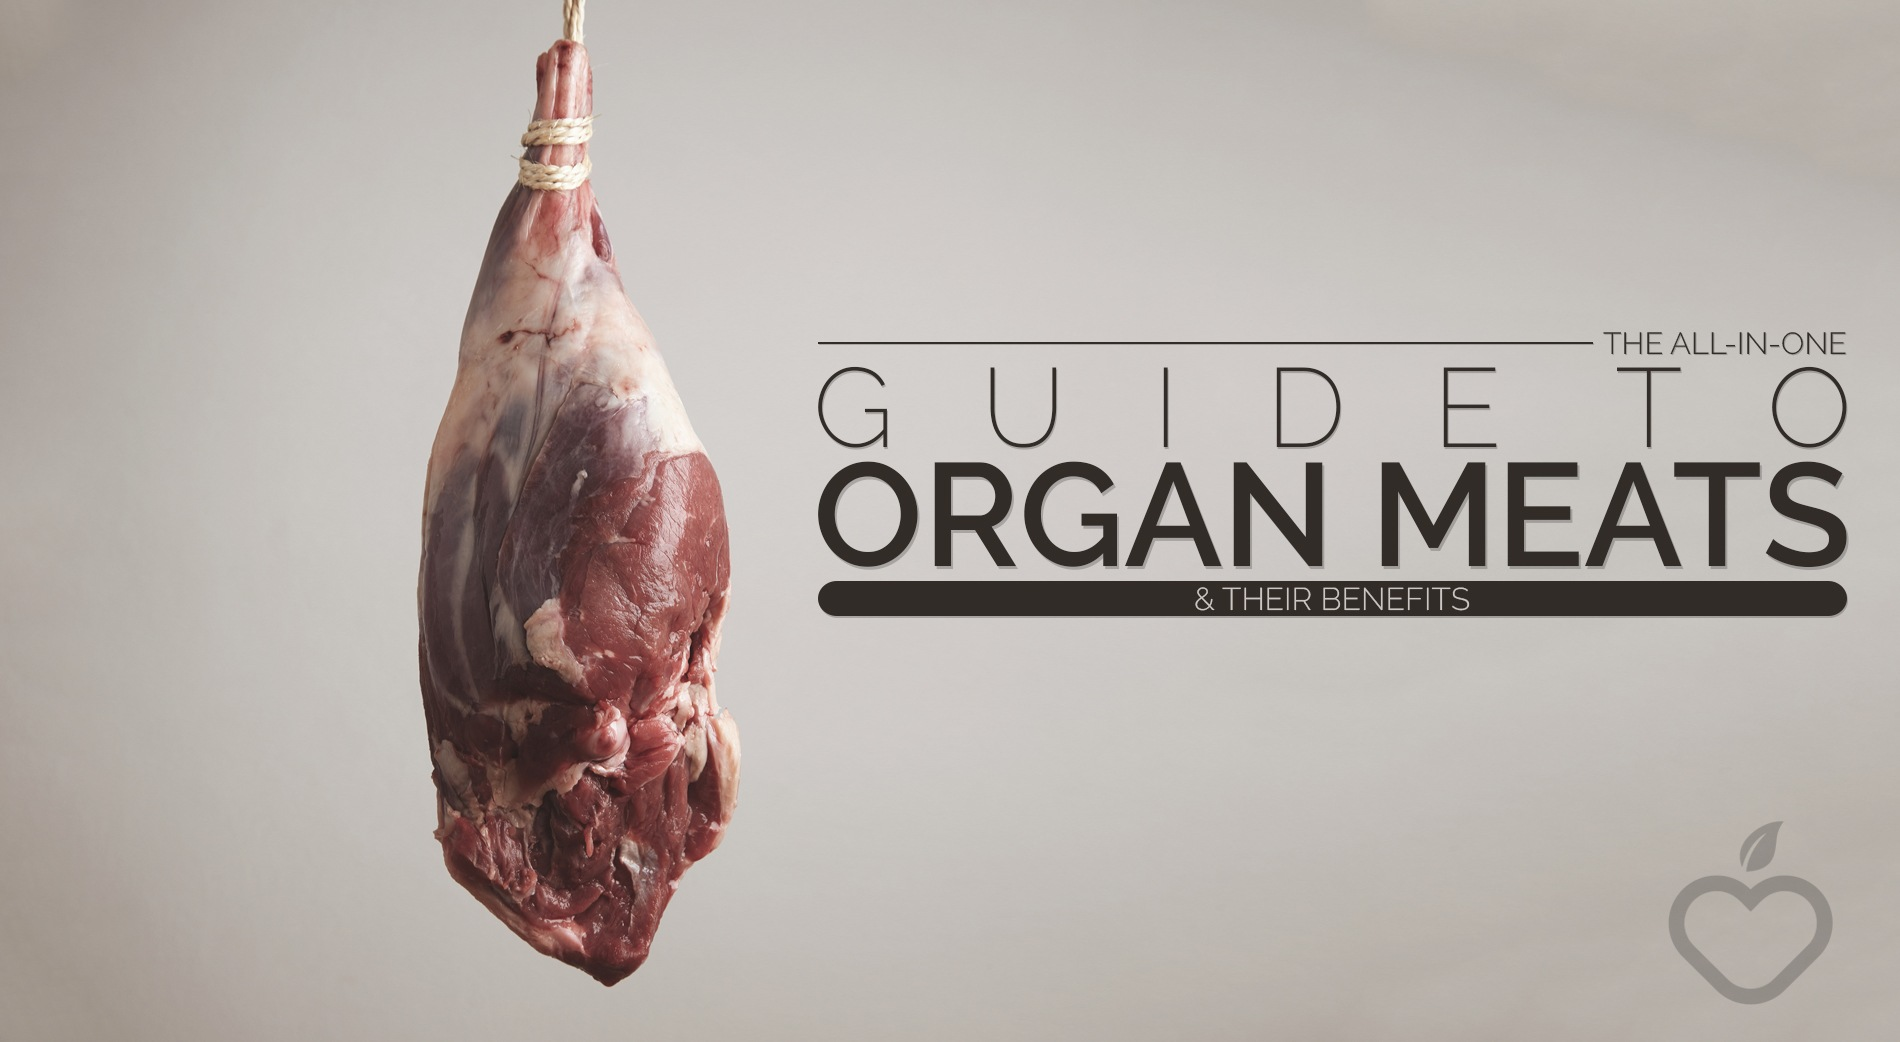 Organ meats Image Design 1 - The All-In-One Guide To Organ Meats  & Their Benefits